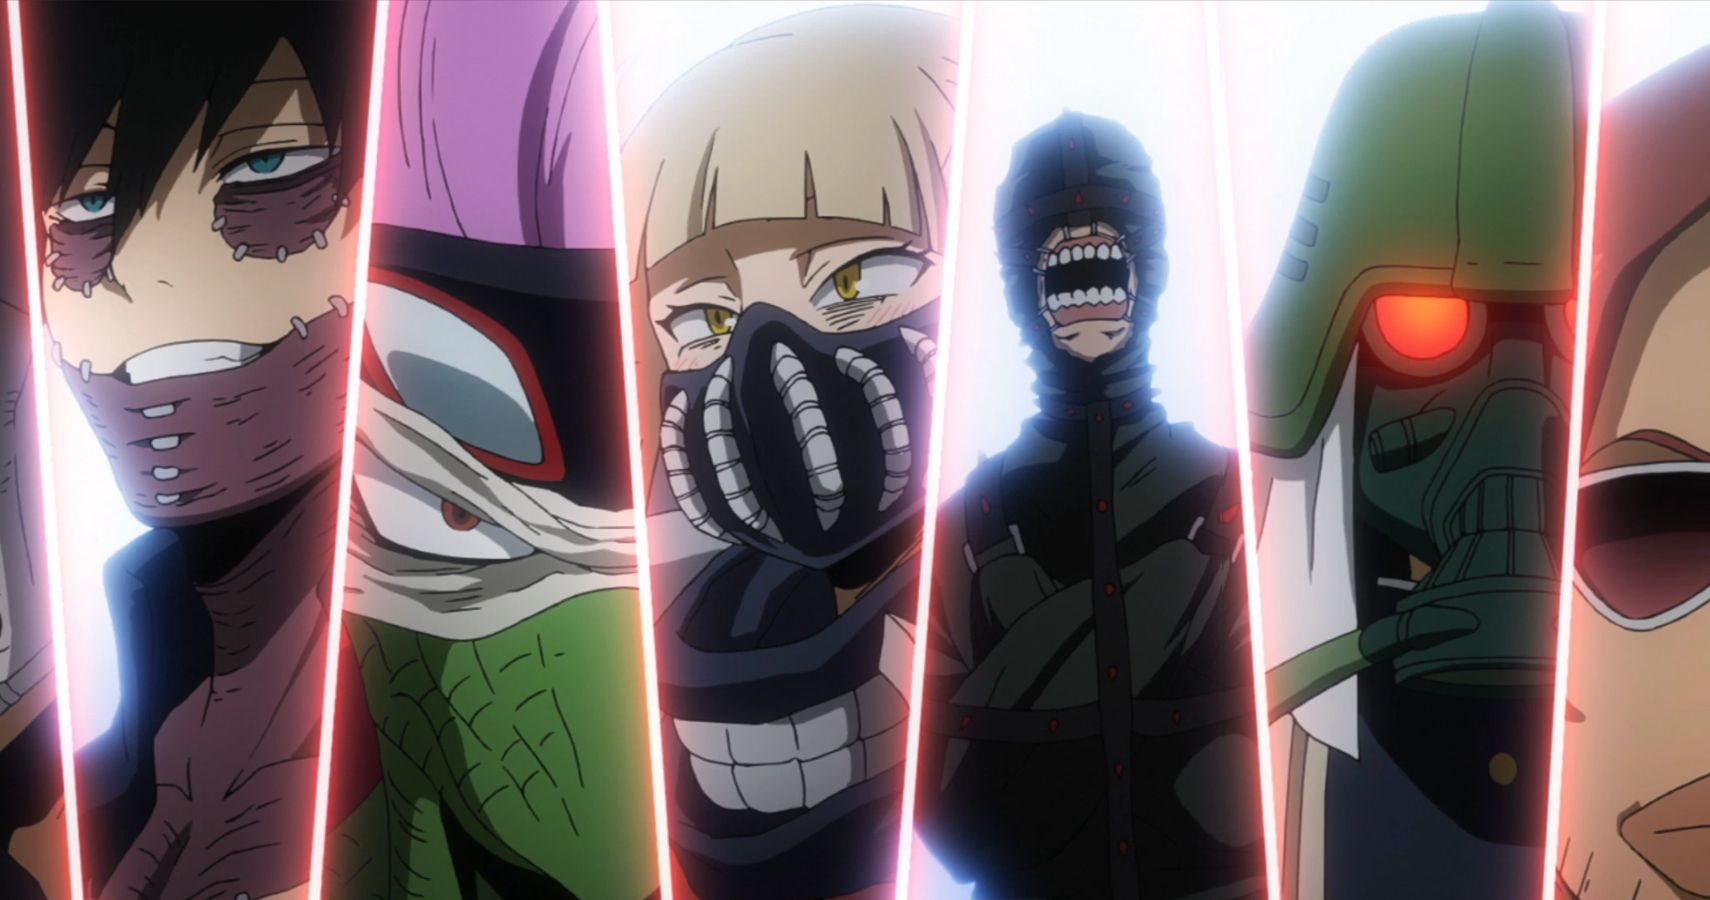 My Hero Academia 10 Characters That Looked Tougher Than They Were They are the titular main antagonists of the shie hassaikai arc. my hero academia 10 characters that